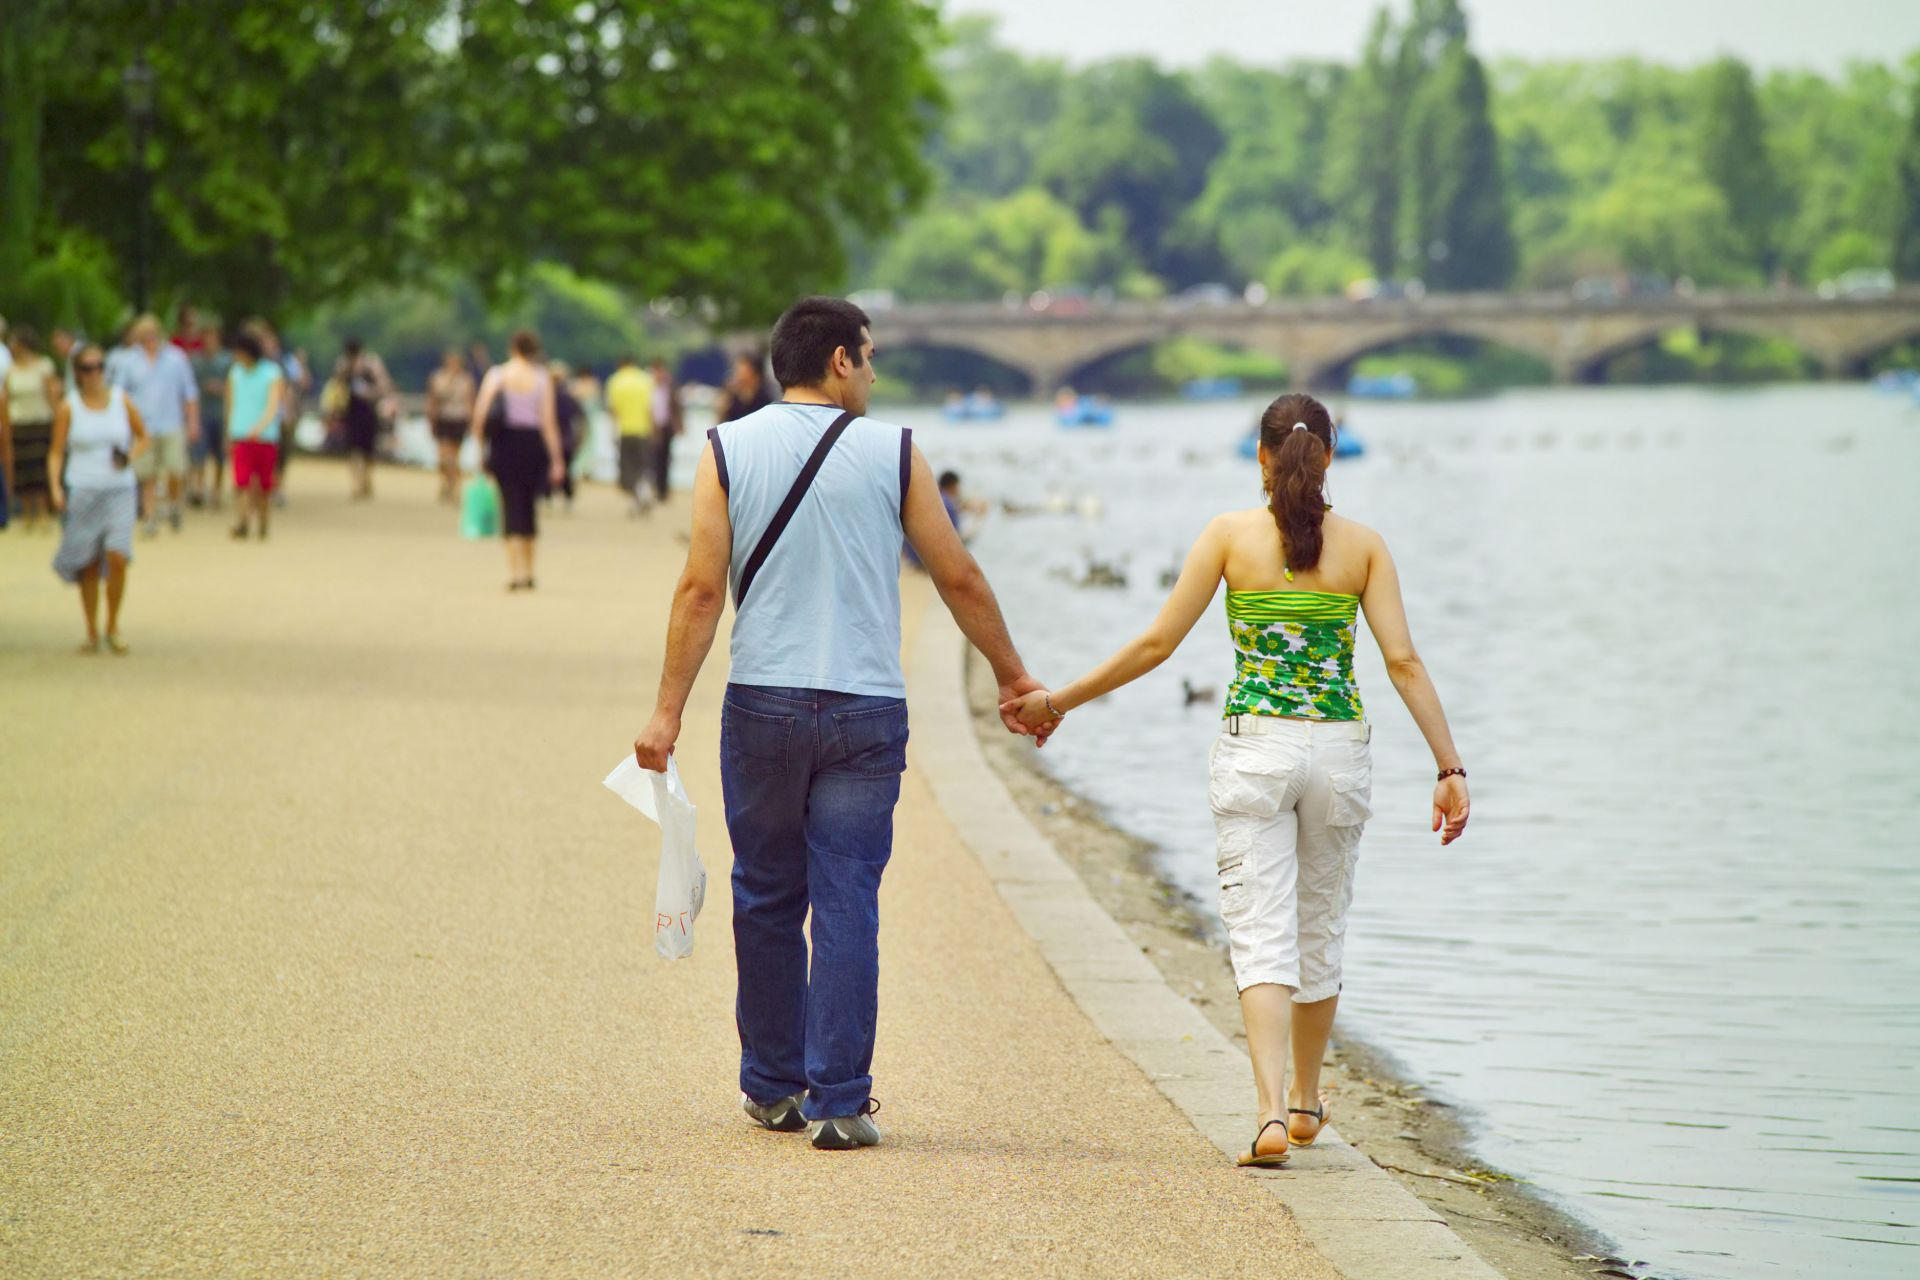 London Royal Parks: Couple walking at the edge of The Serpentine in London's Hyde Park. Photo Credit: ©Visit London Images.